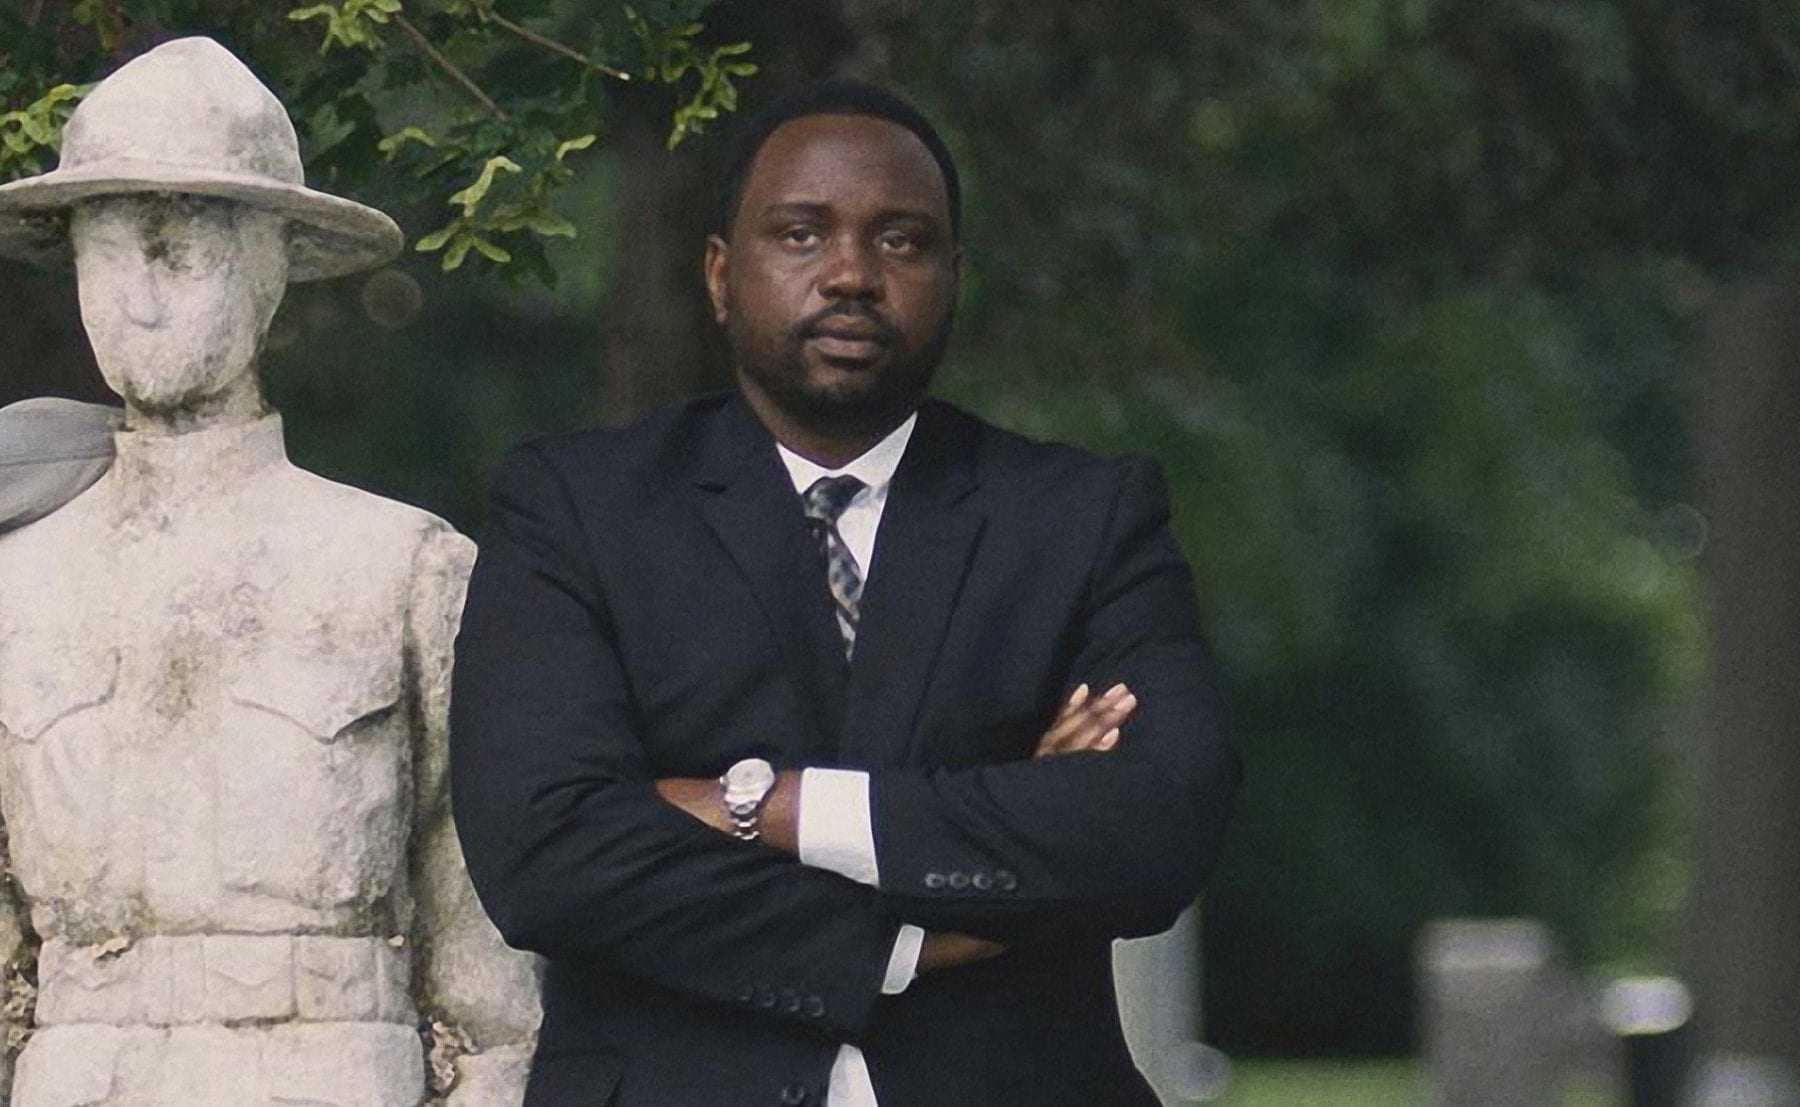 FX Limited Series Class '09 Sees Brian Tyree Henry and Kate Mara as FBI Agents in an Artificial Intelligence-Raised Legal System